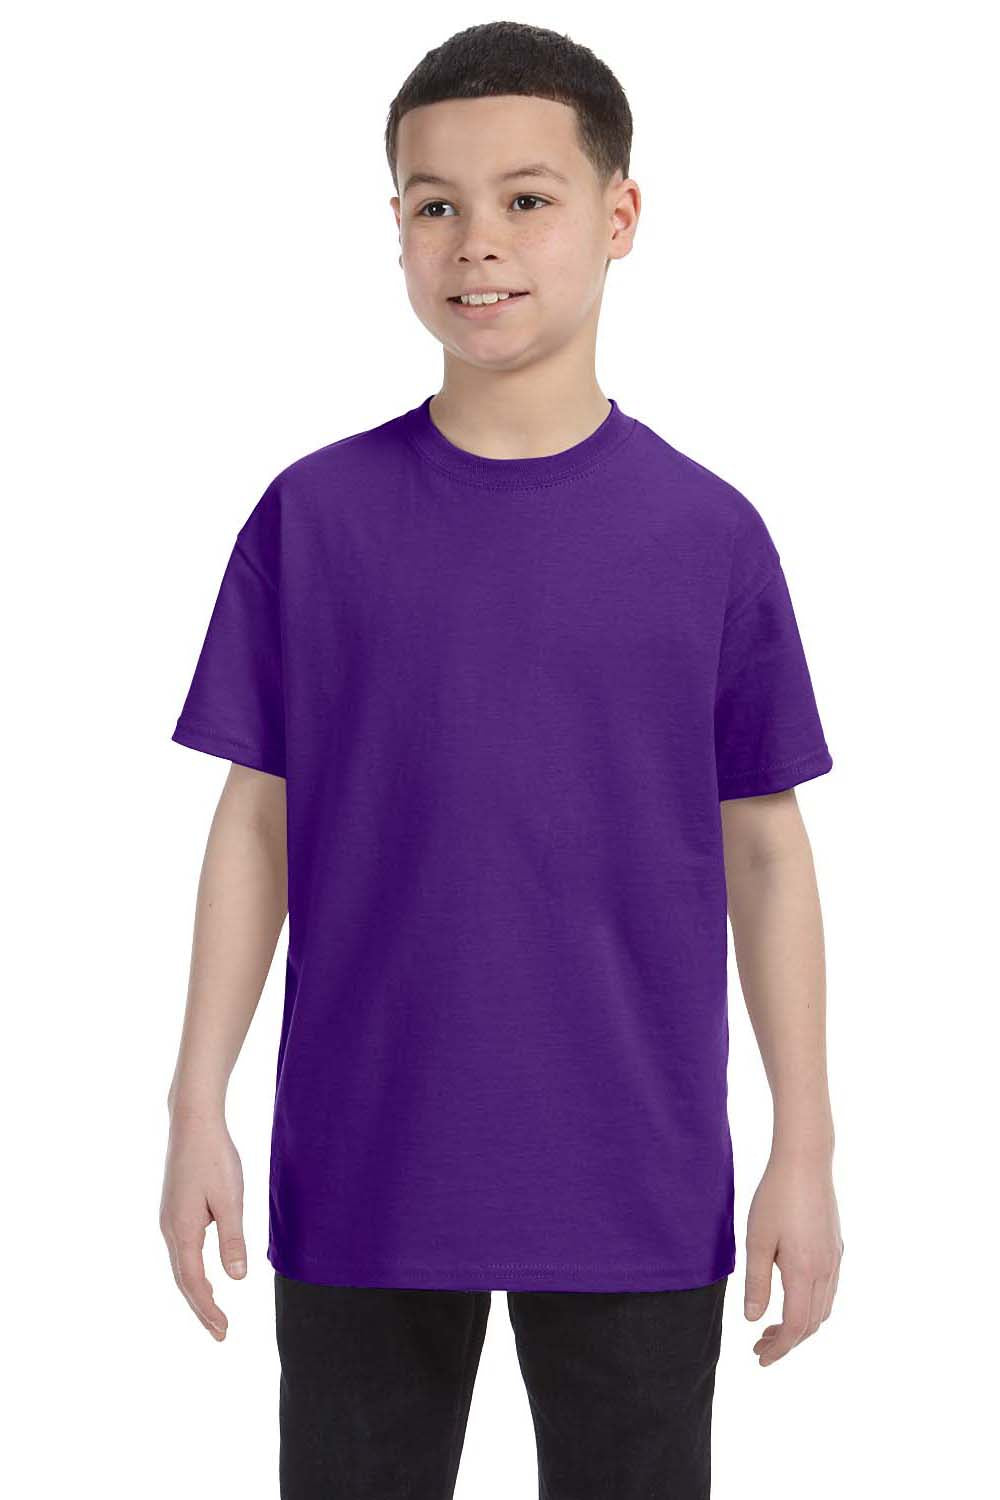 Hanes 54500 Youth ComfortSoft Short Sleeve Crewneck T-Shirt Purple Front